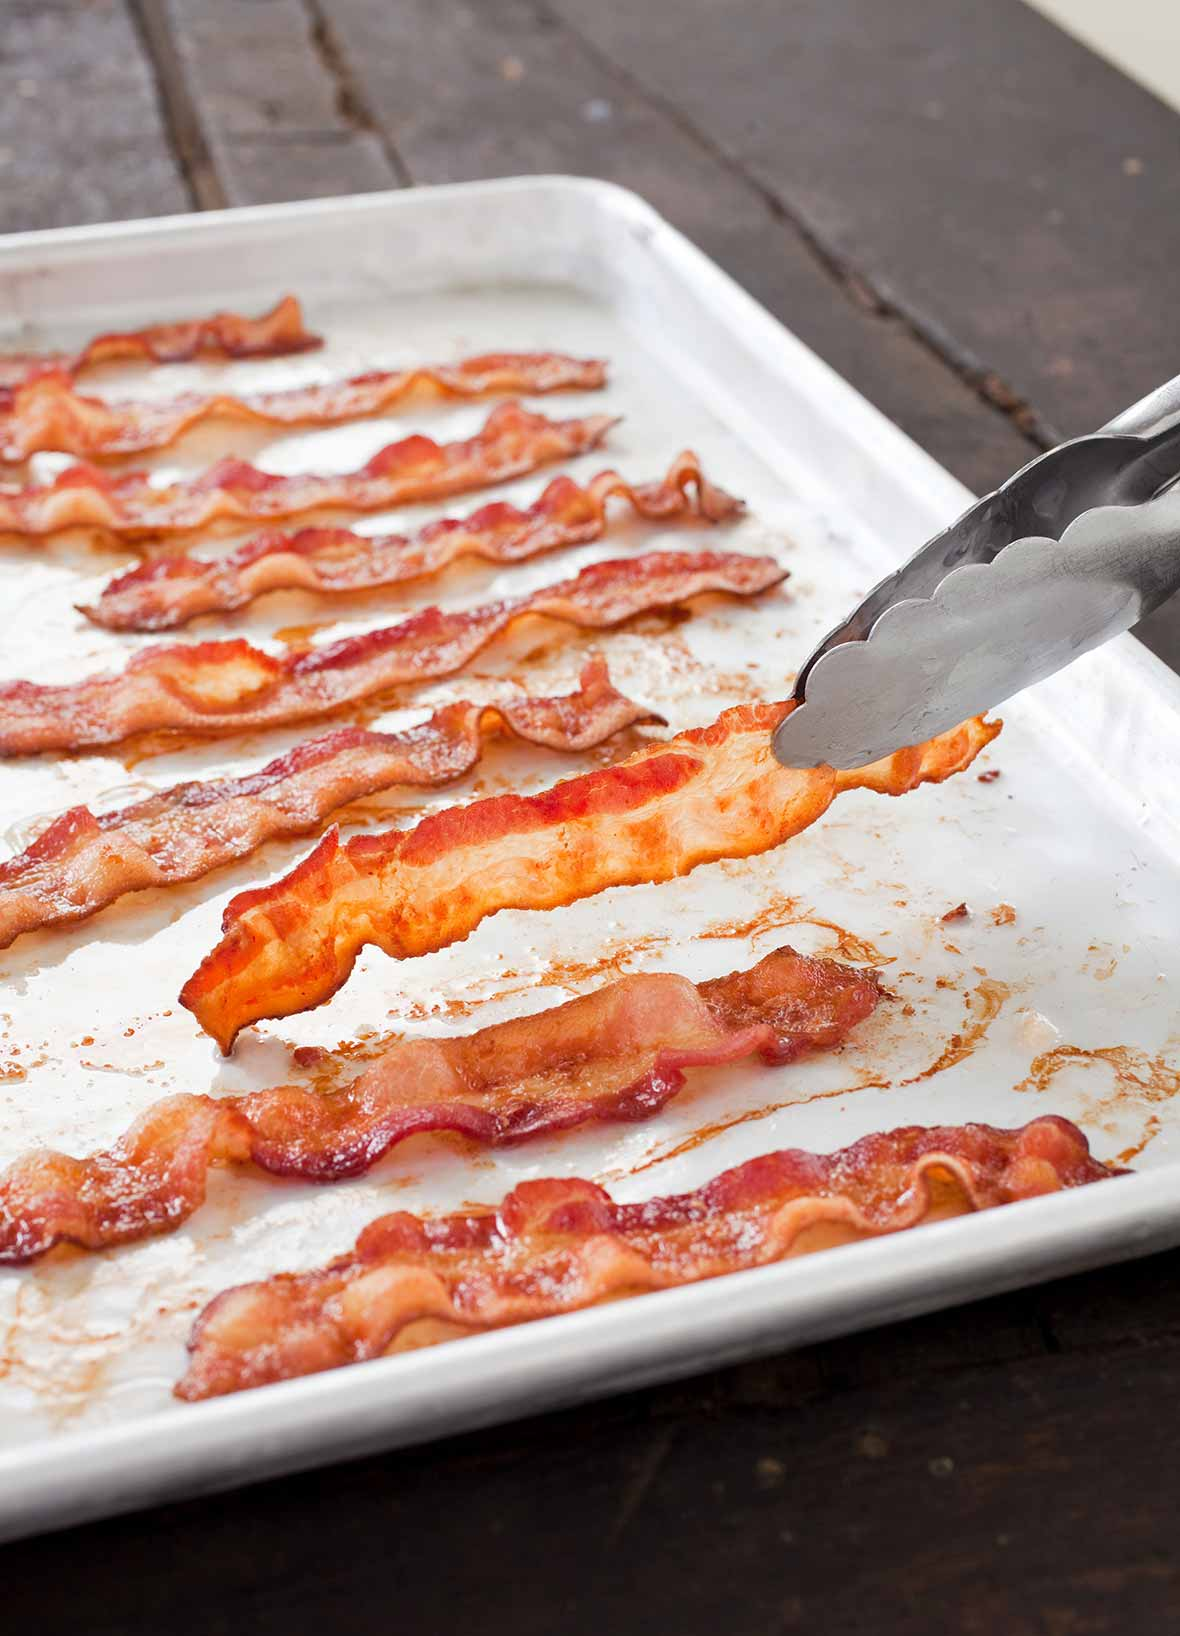 A white tray with slices of perfect baked bacon